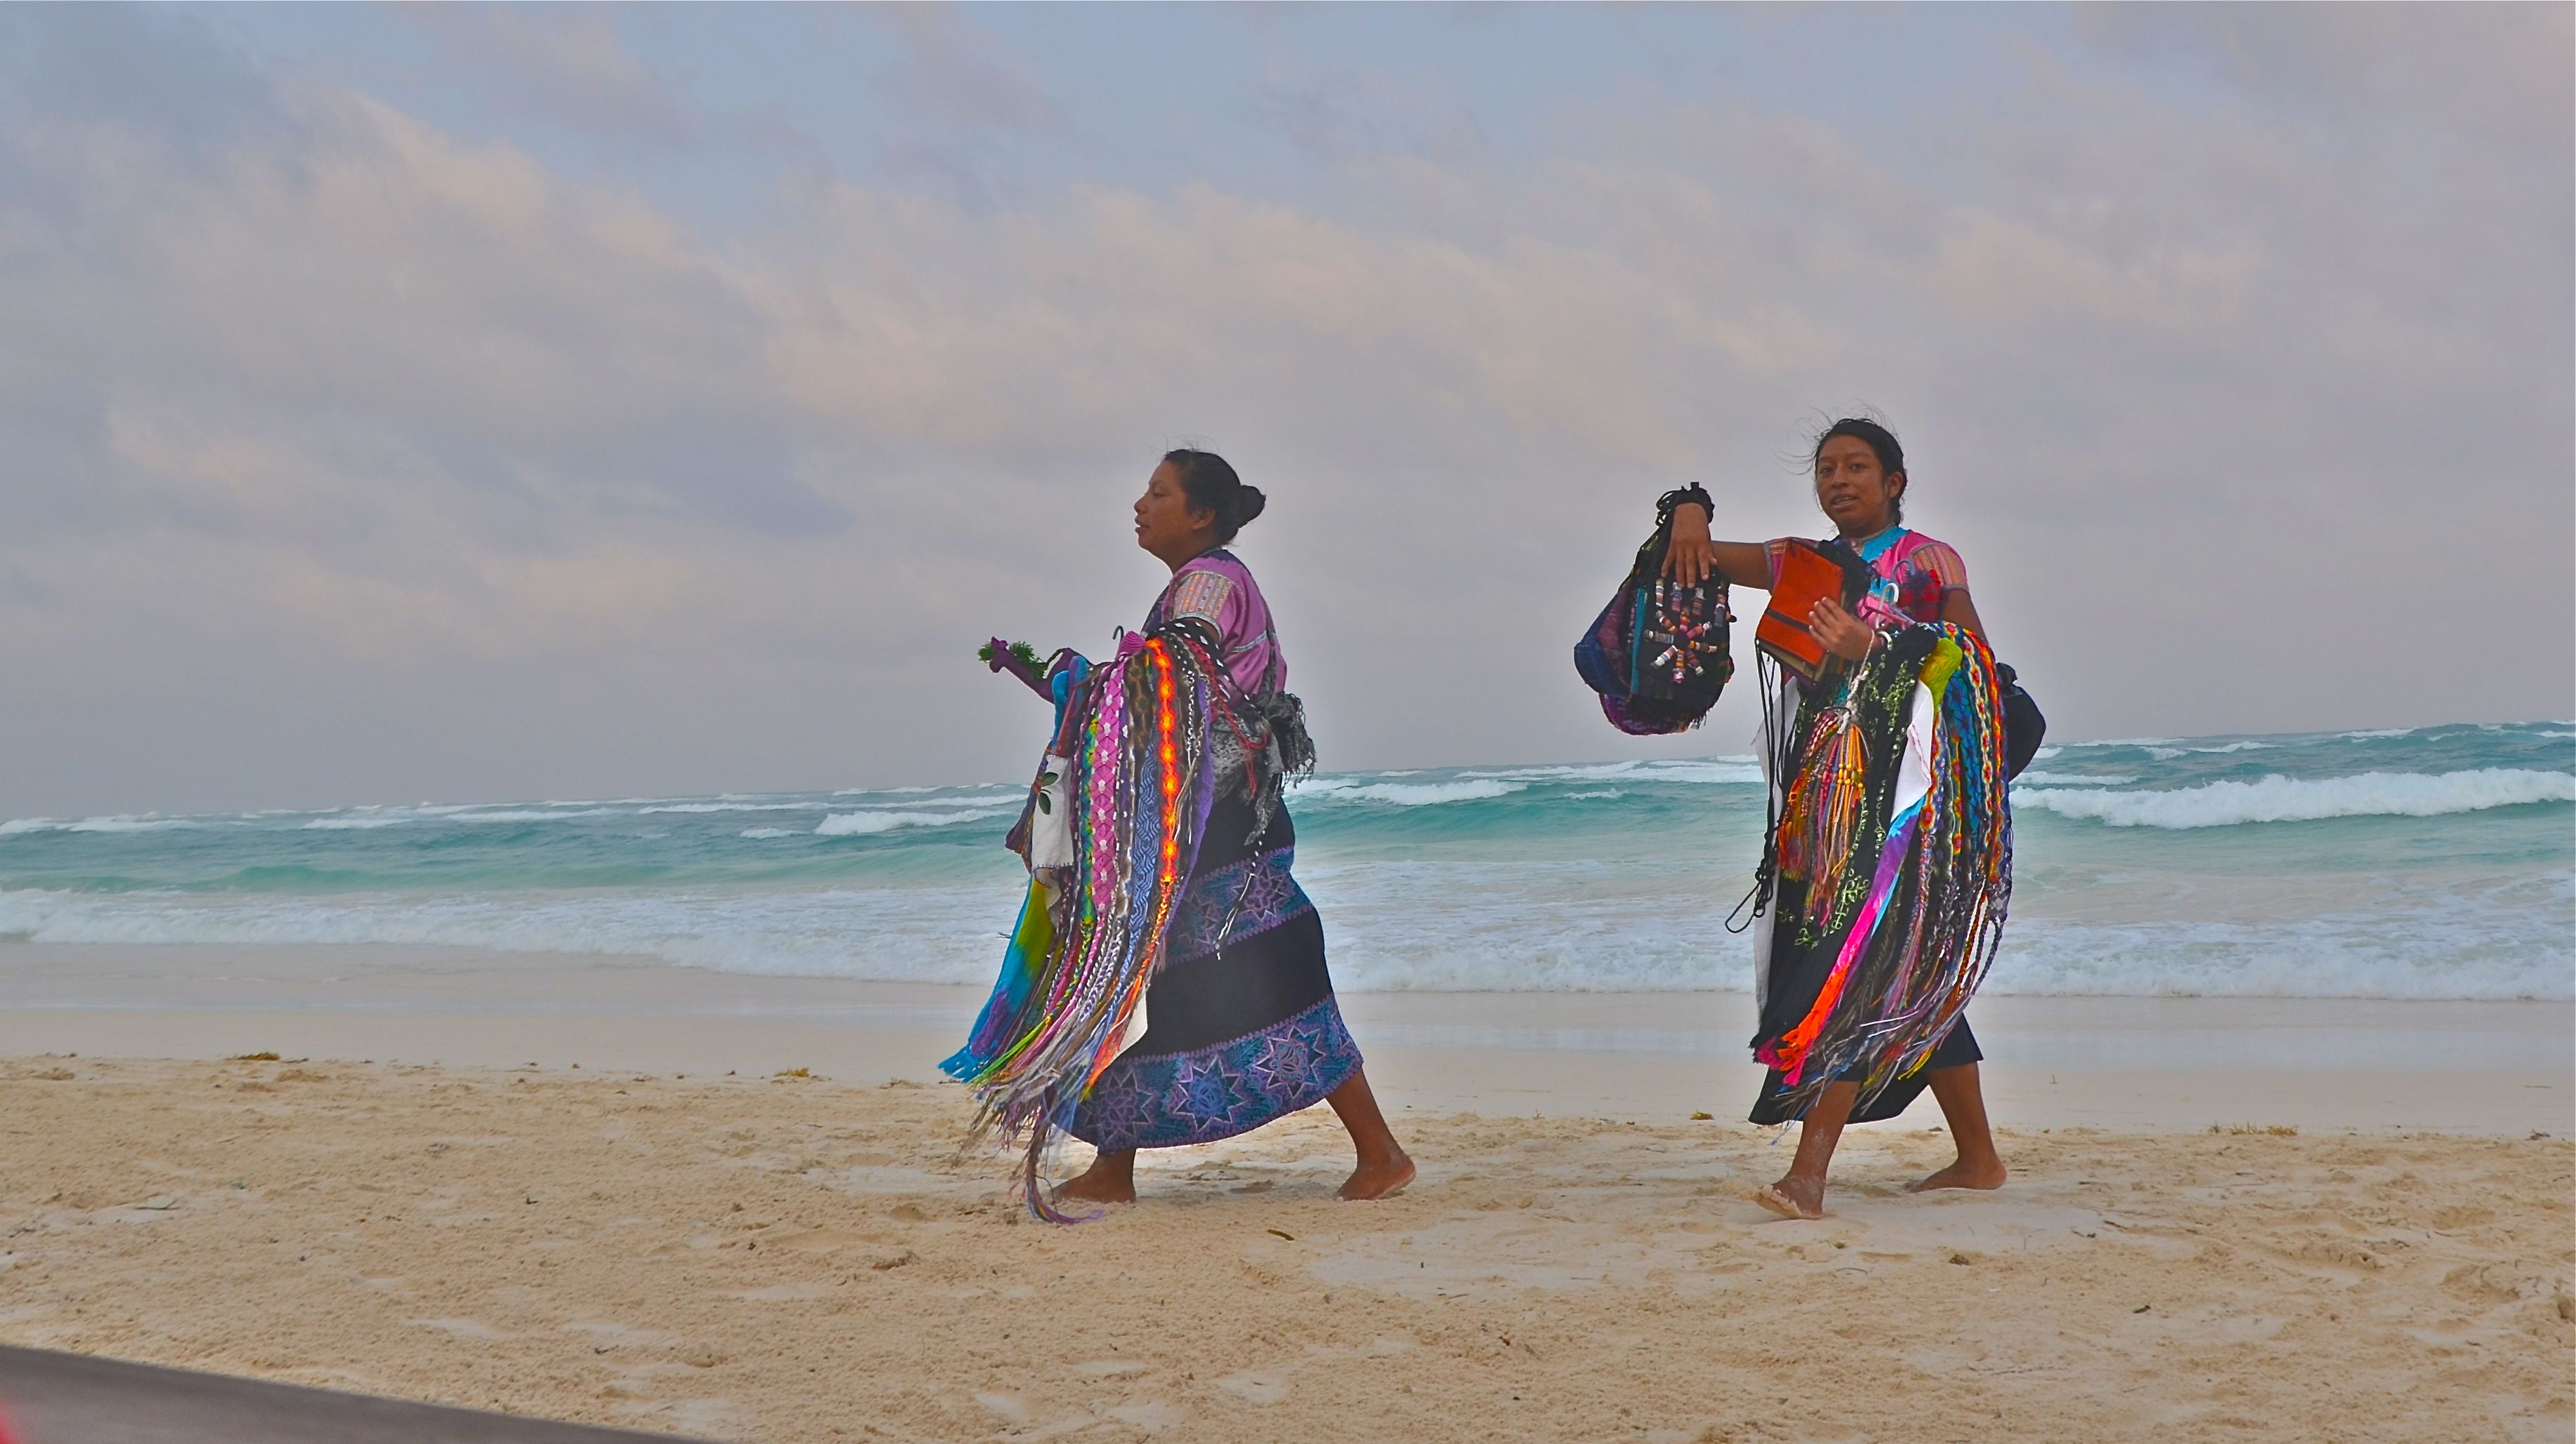 Indigenous women politely selling to touriststhis is